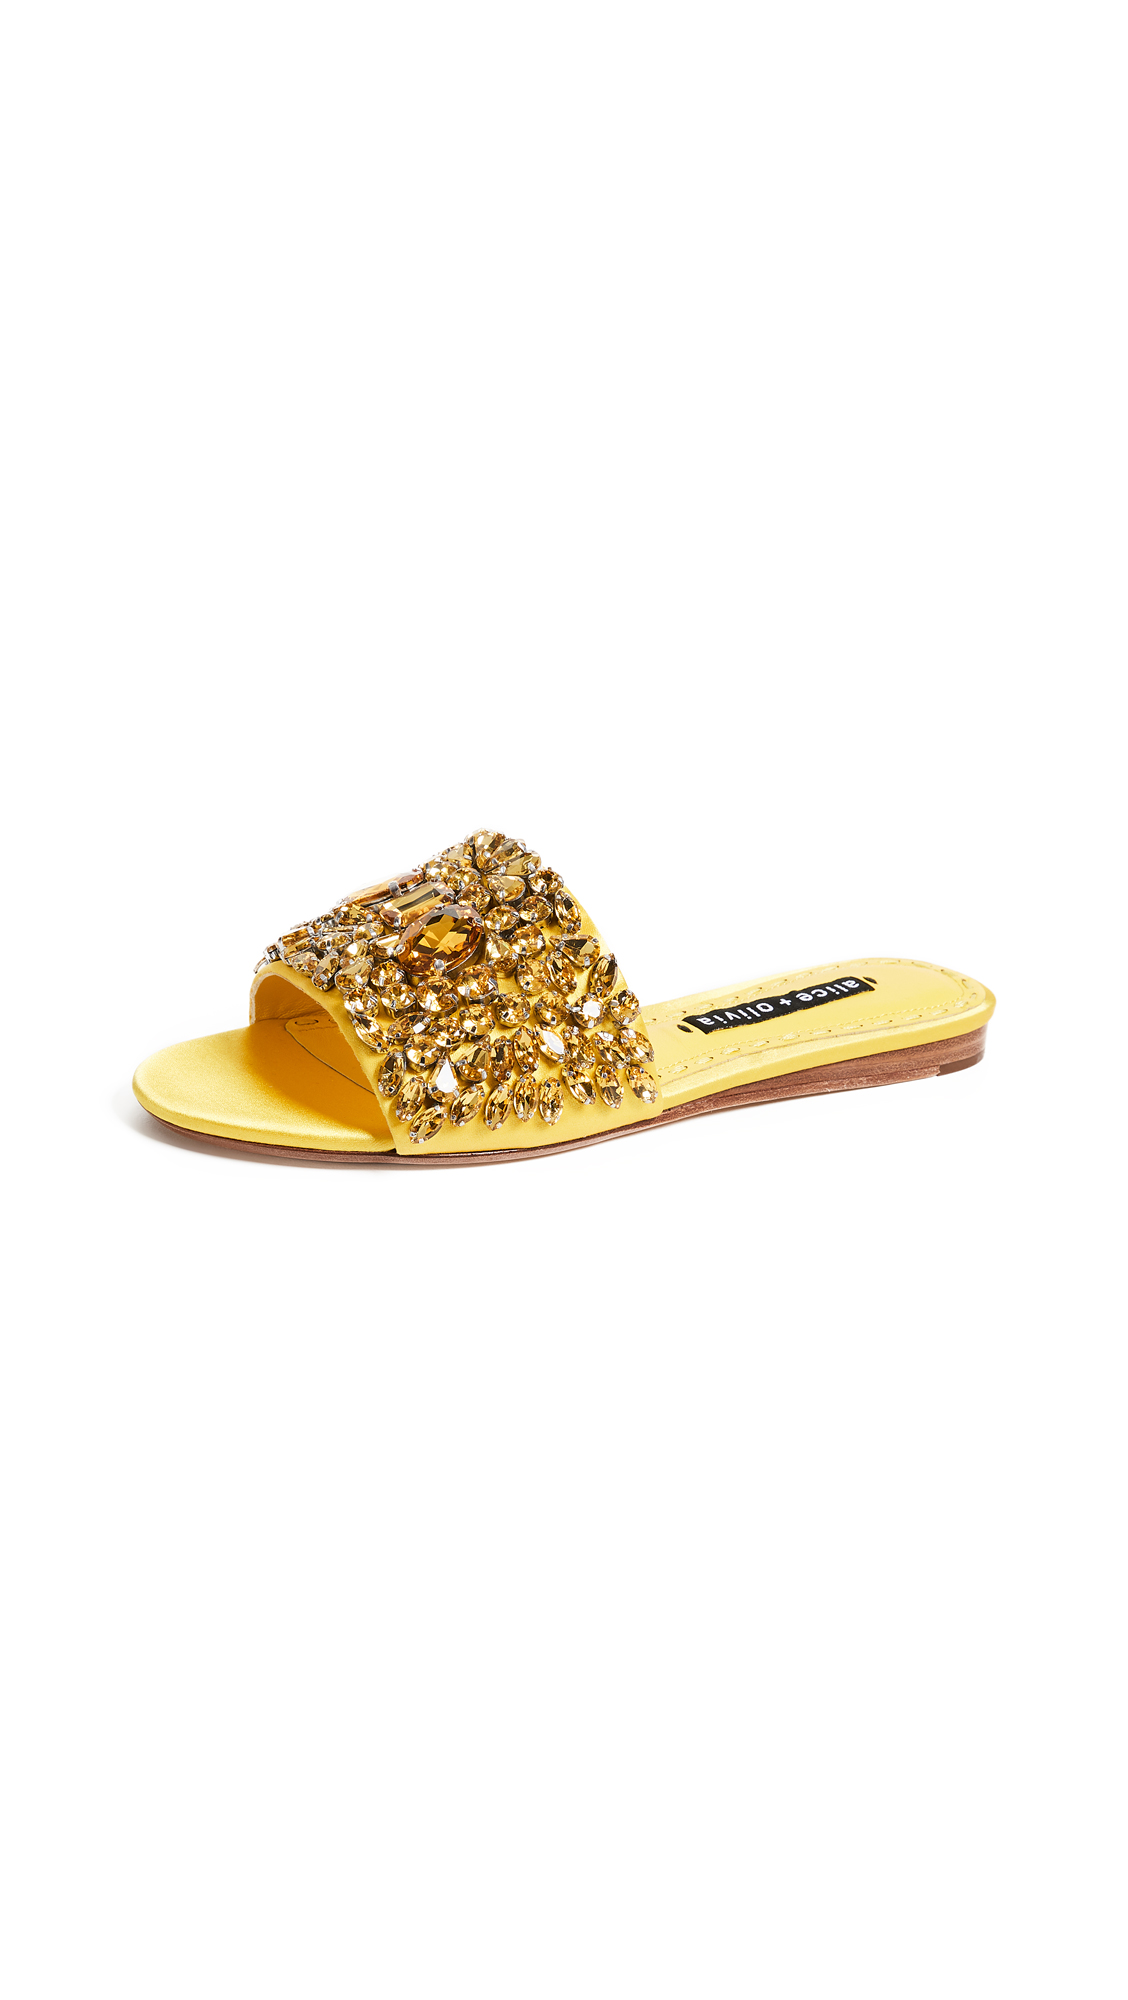 alice + olivia Abbey Crystal Slides - Dandelion